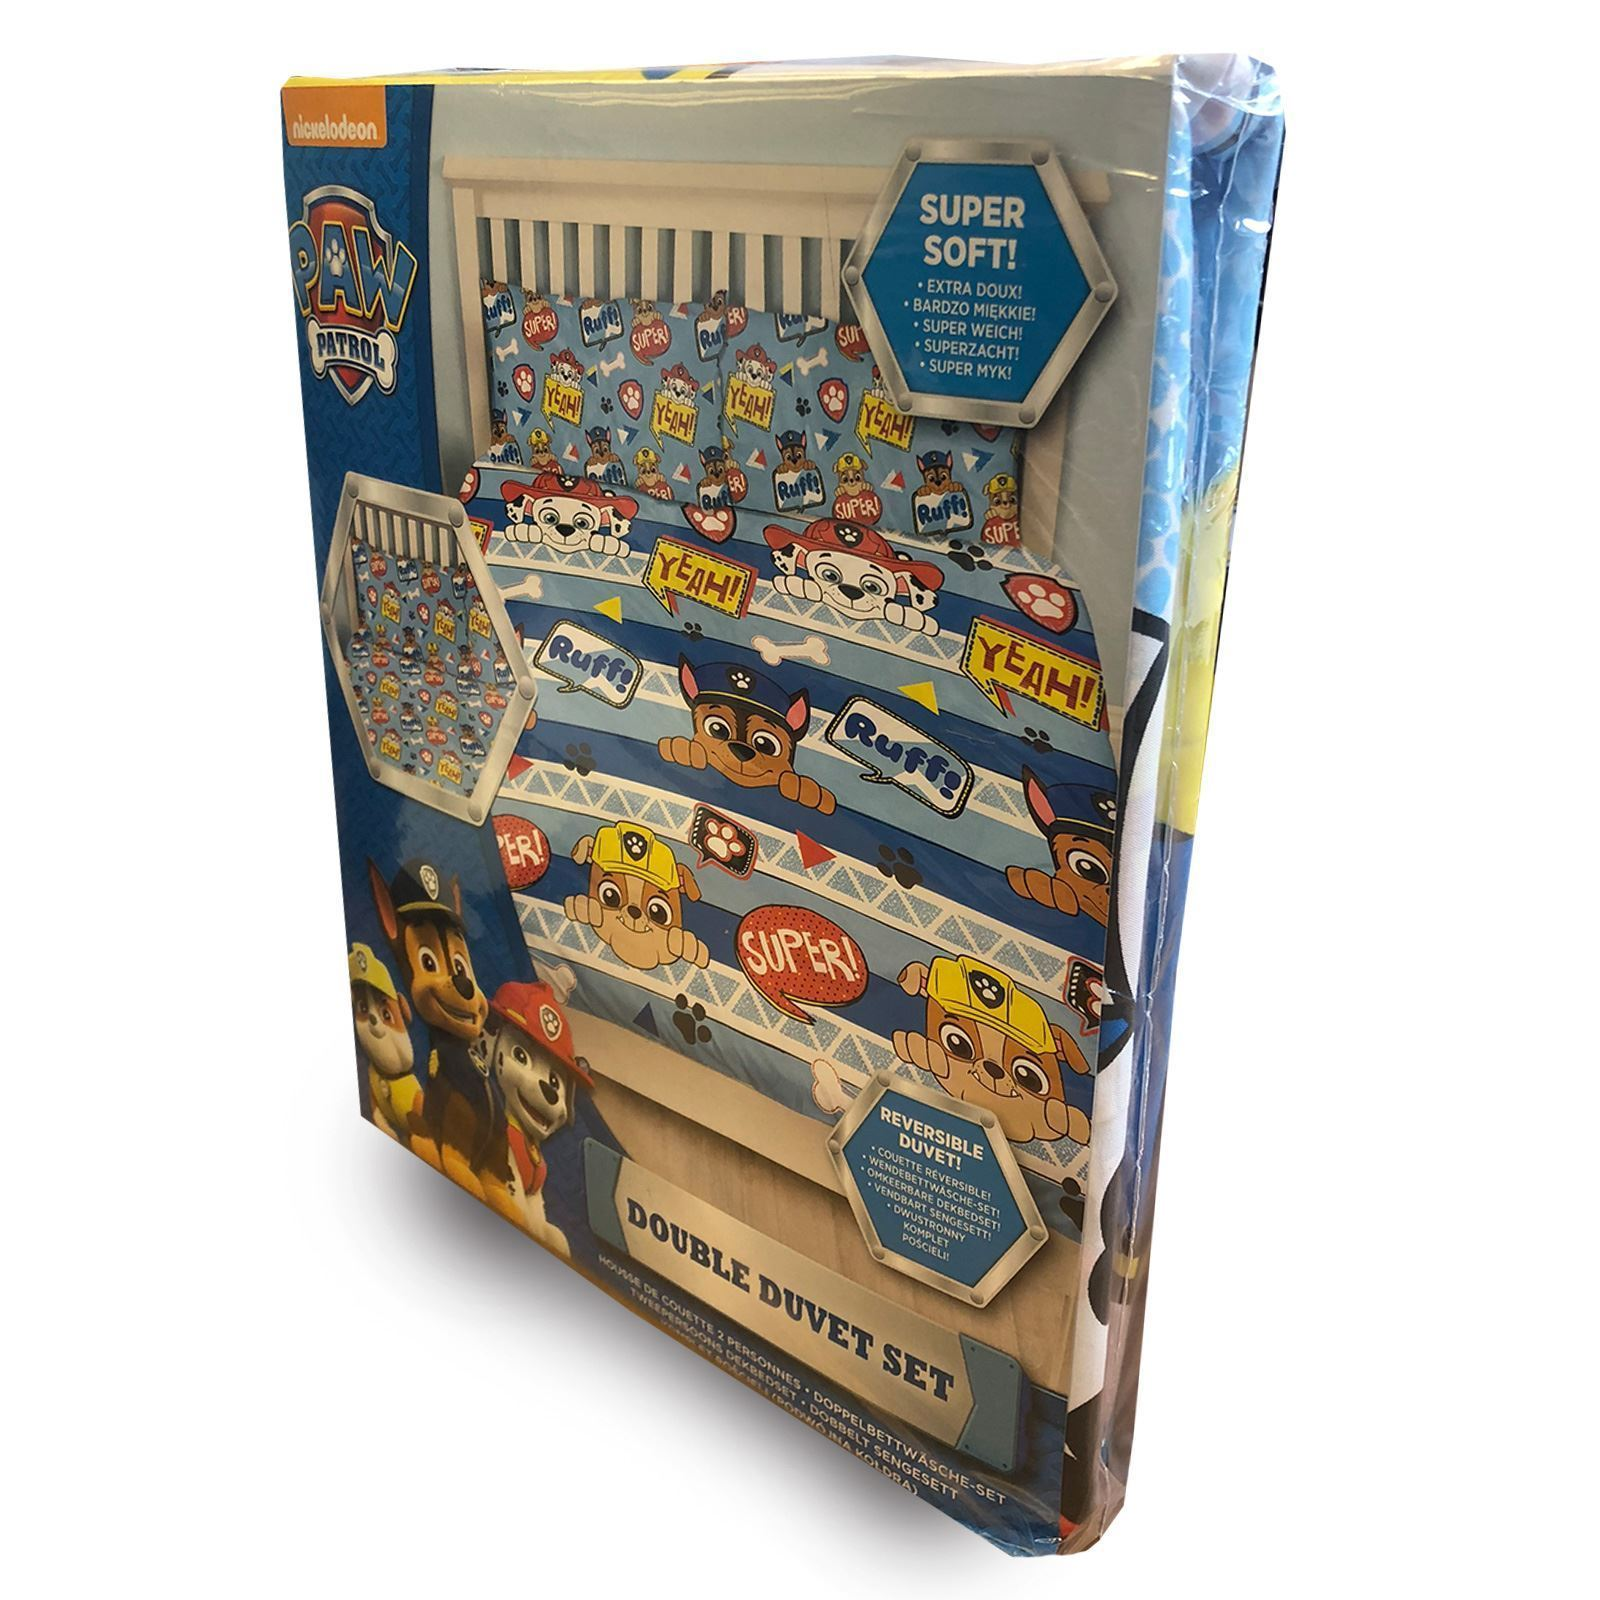 Official-Paw-Patrol-Licensed-Duvet-Covers-Single-Double-Chase-Skye-Marshall thumbnail 24